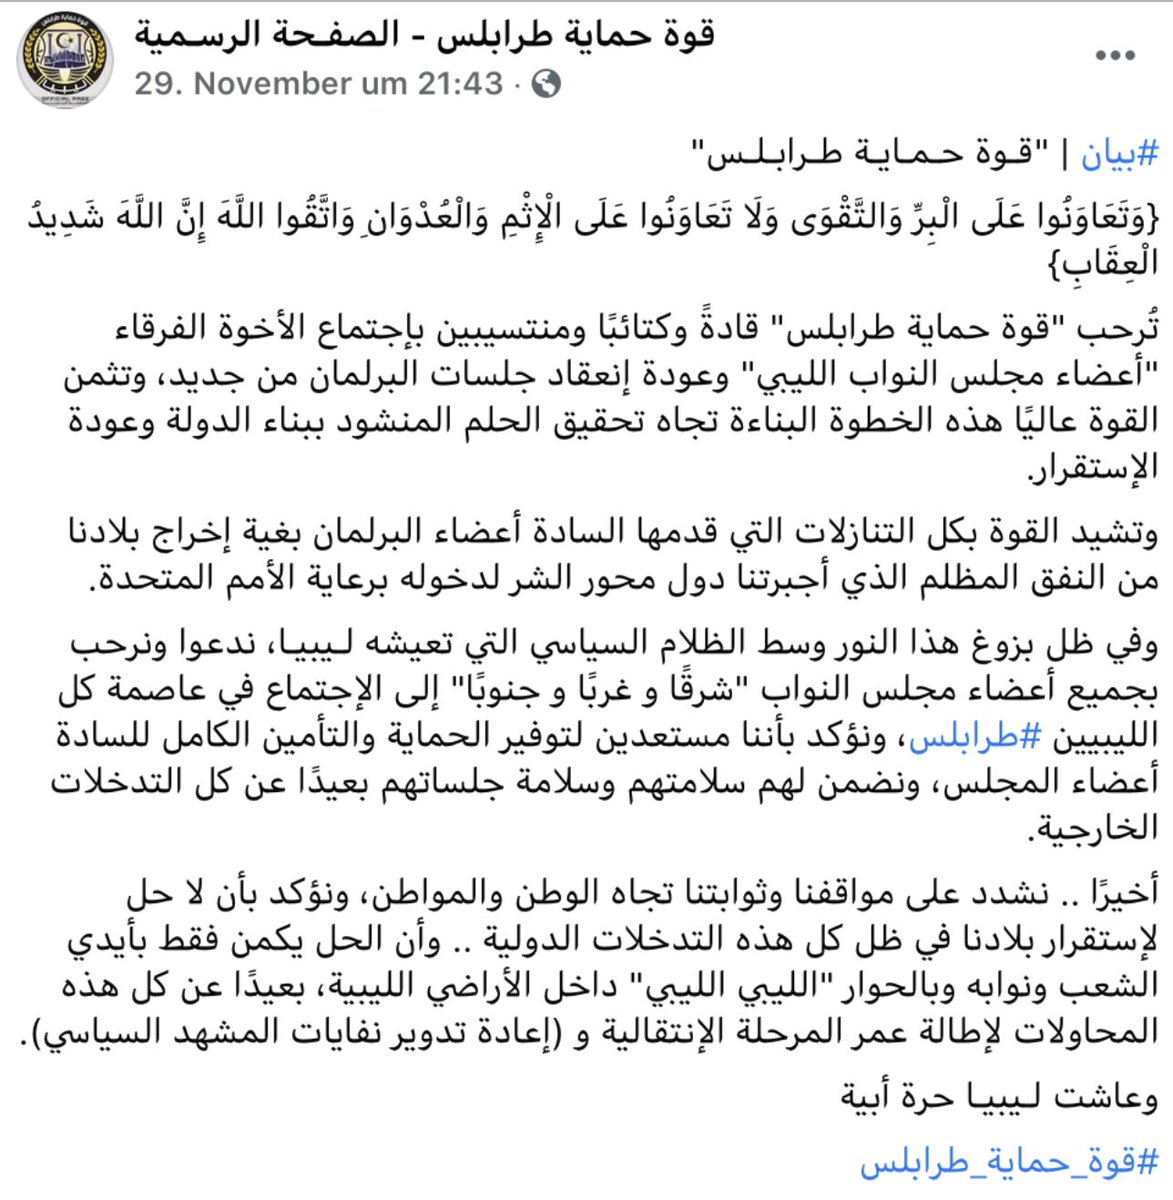 In politics & security news: Tripoli Protection Forces #TPF issues a statement, welcoming progress in #Morocco between delegations of the #HoR and the #HSC as well as the joint unity statement by the HoR emphasising a #Libyan-Libyan solution to end the conflict. #Libya #ليبيا https://t.co/LkuoLxi4WV